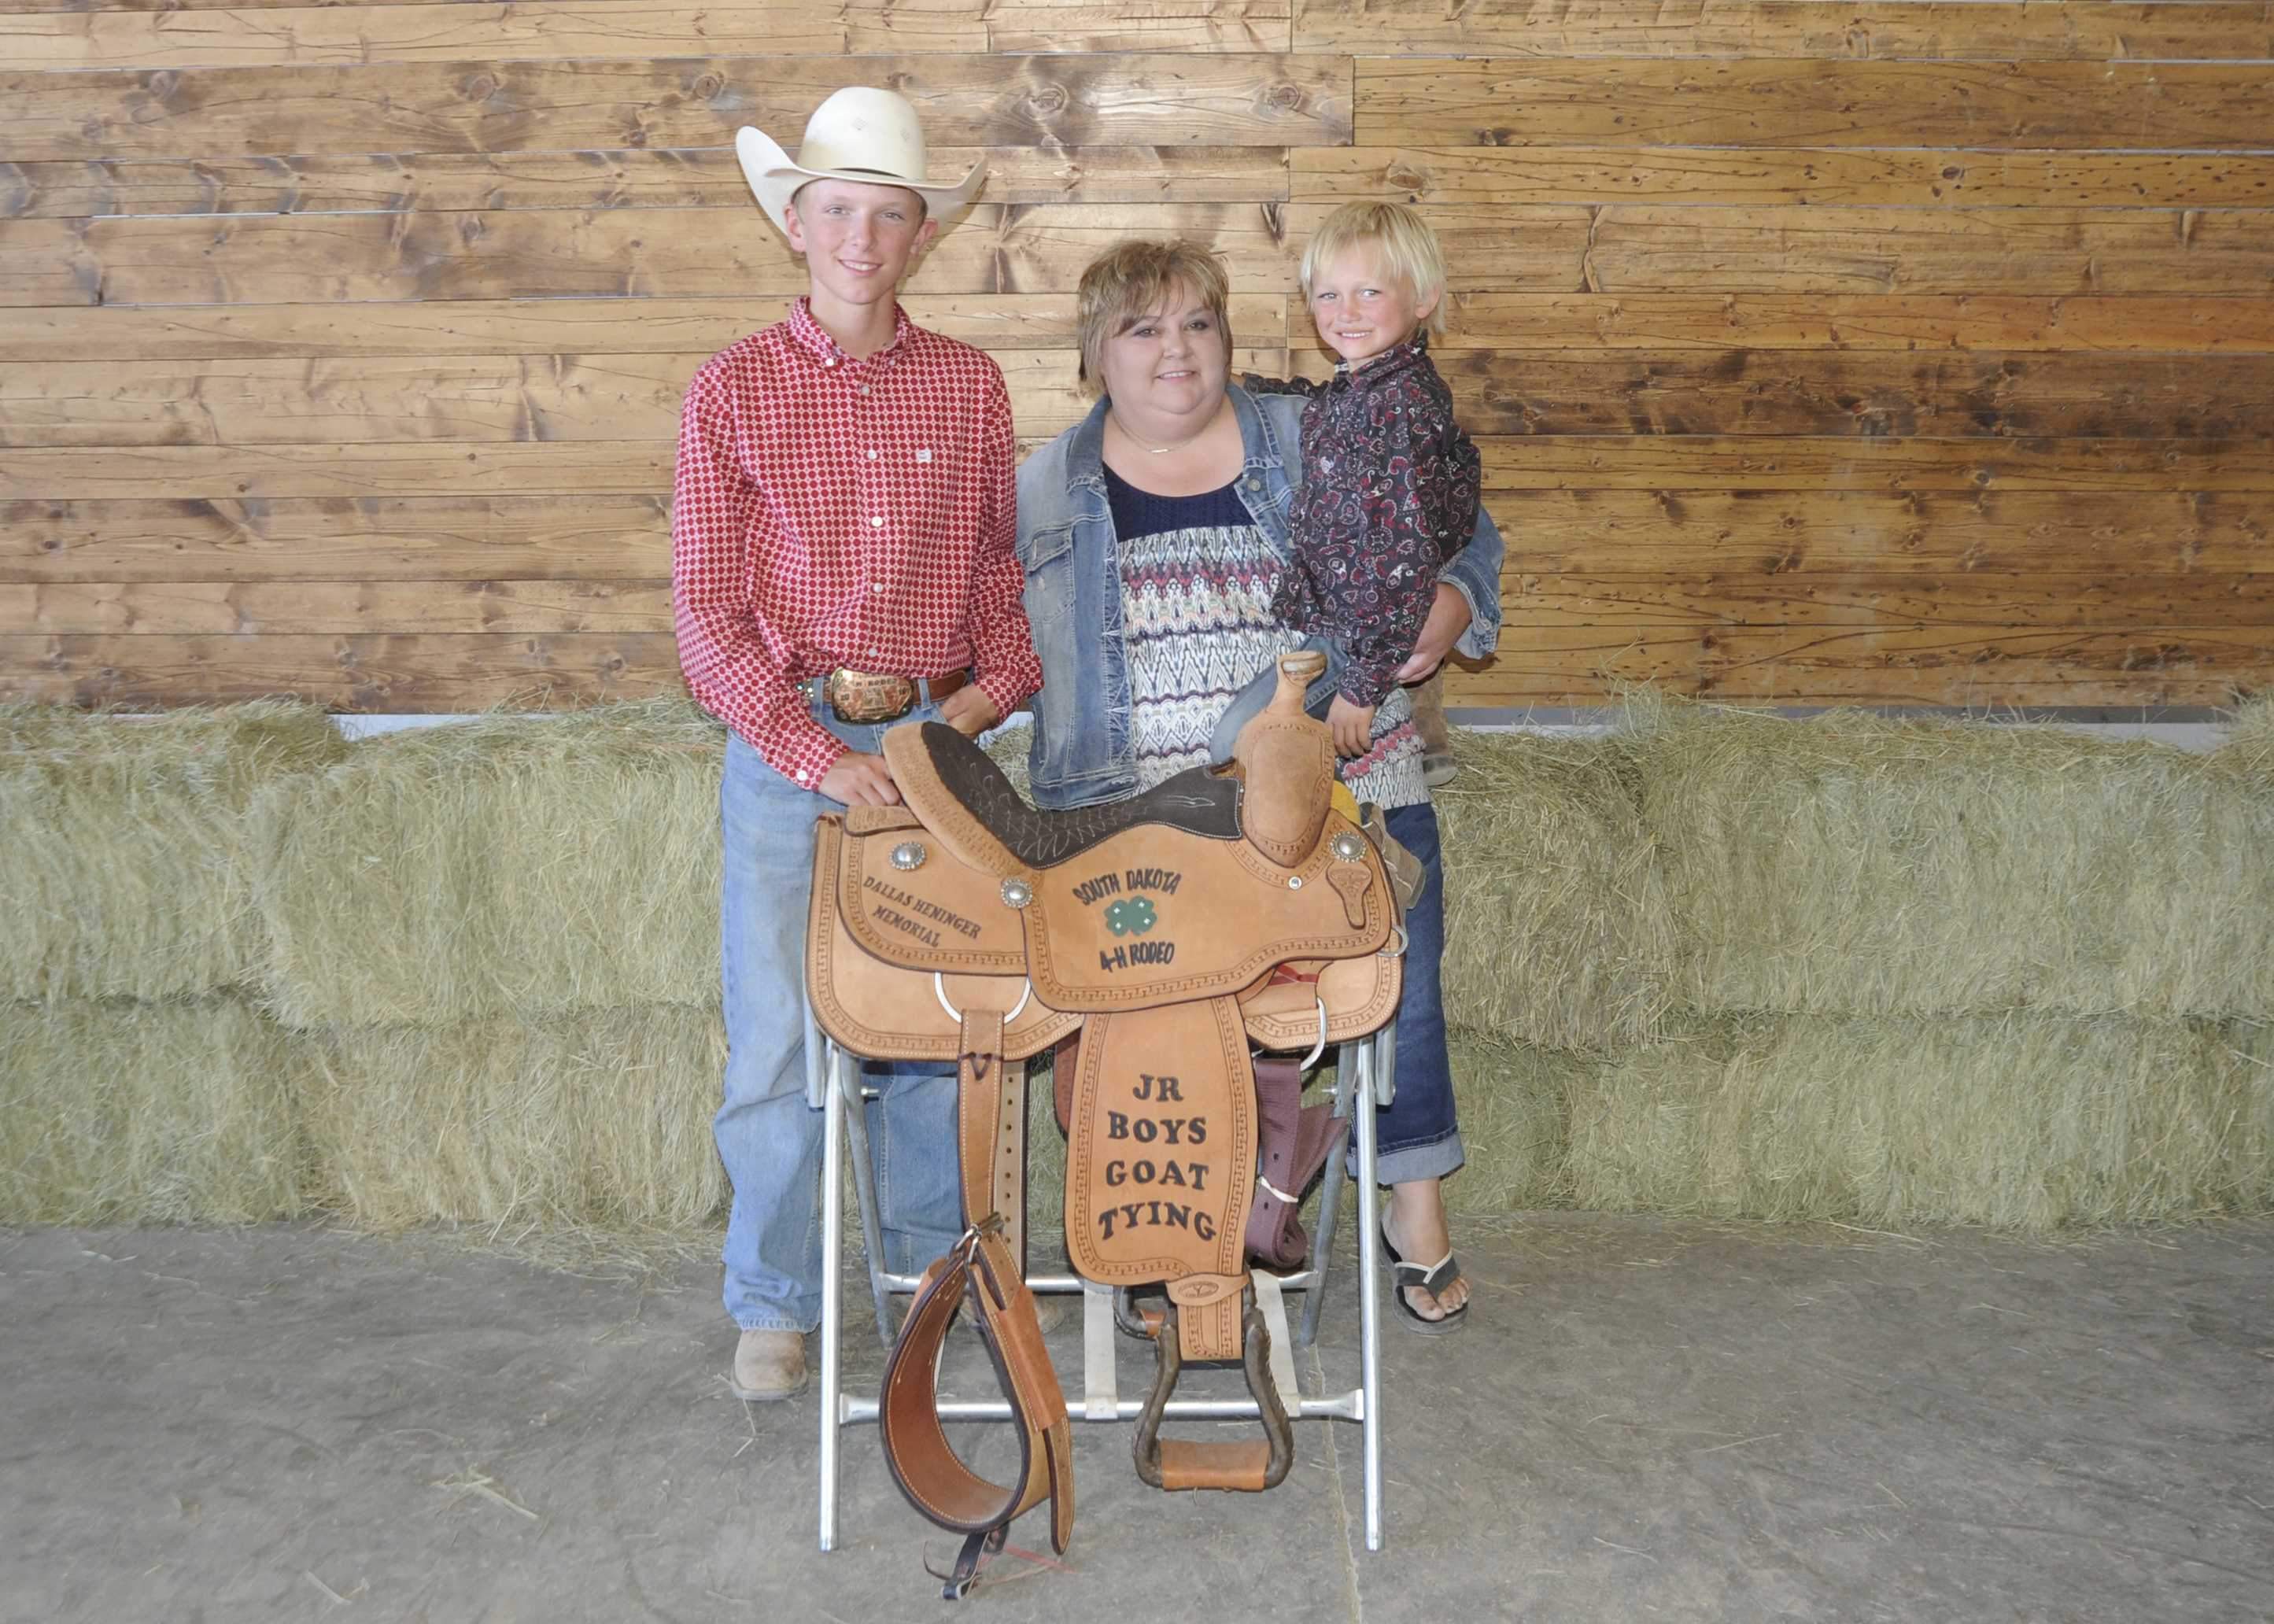 Jr Boy Goats 2 South Dakota 4h Rodeo